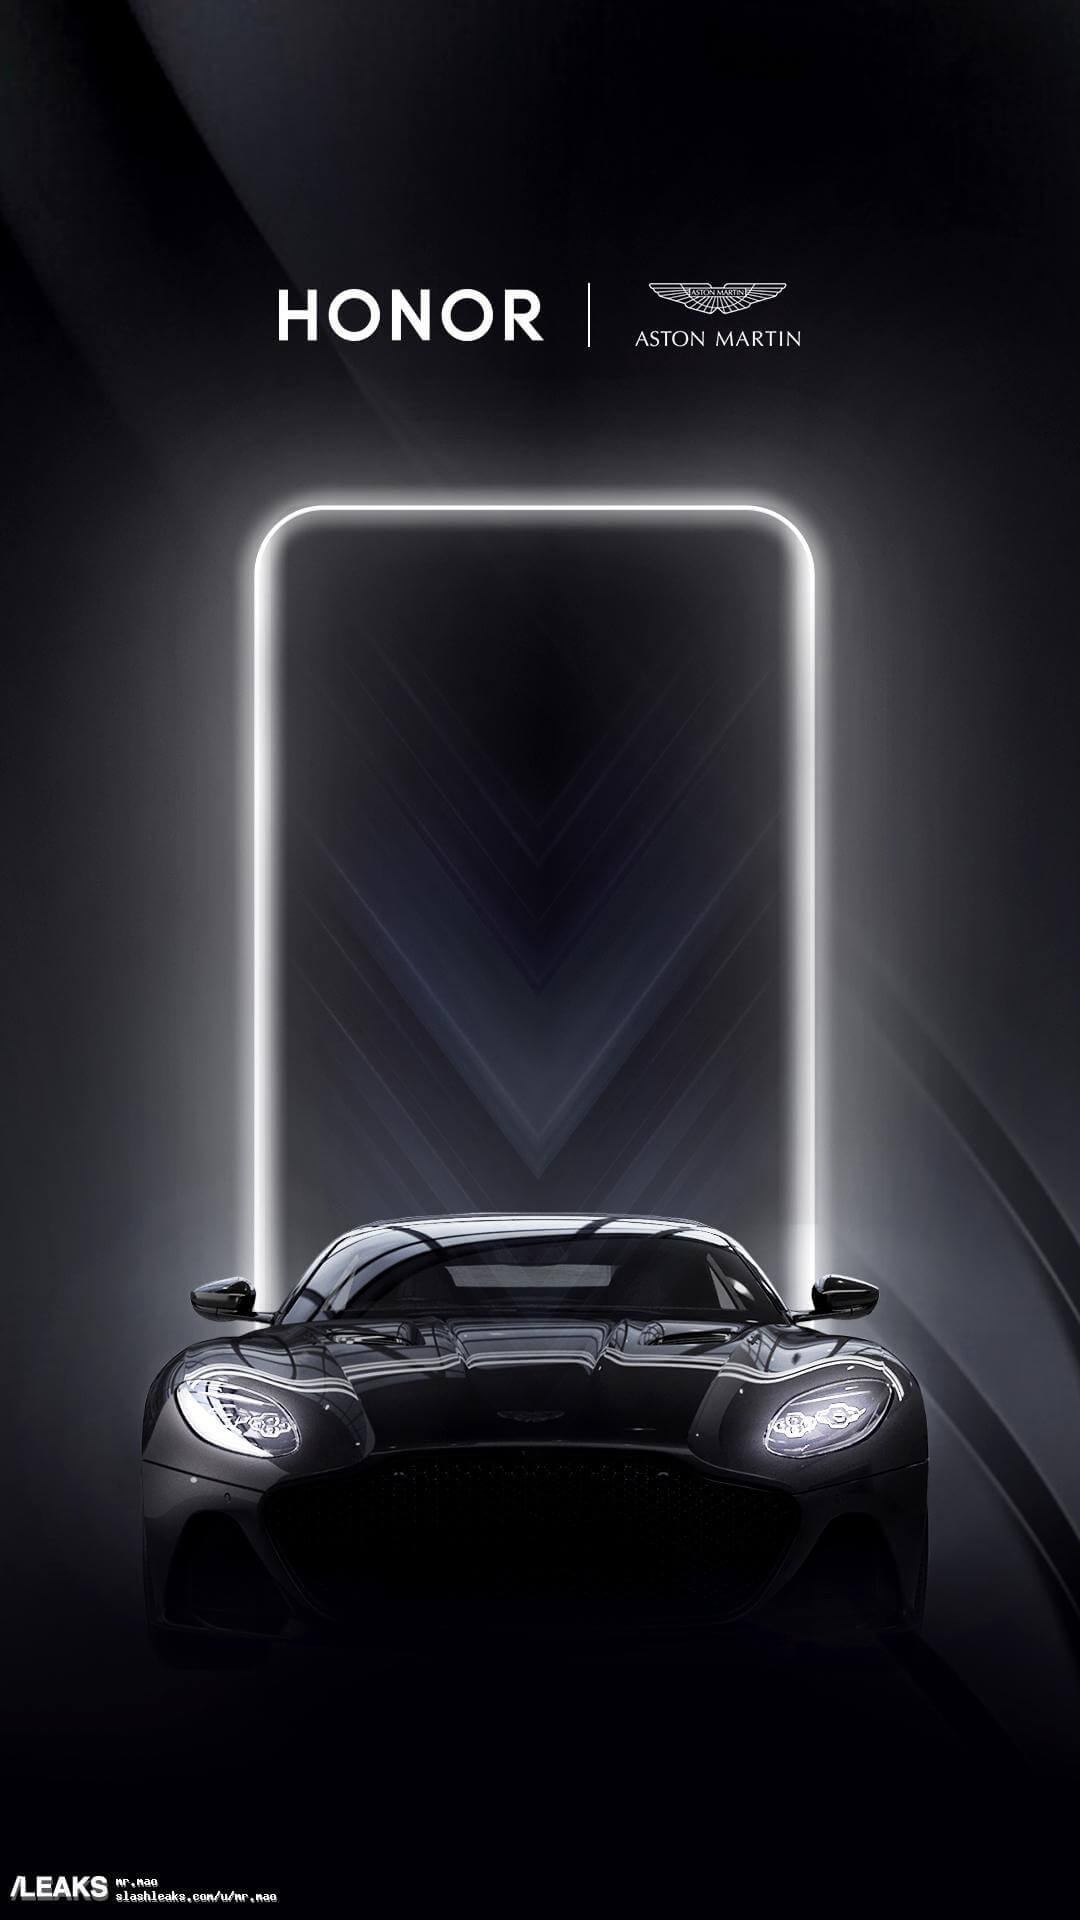 Honor V30 Aston Martin Poster